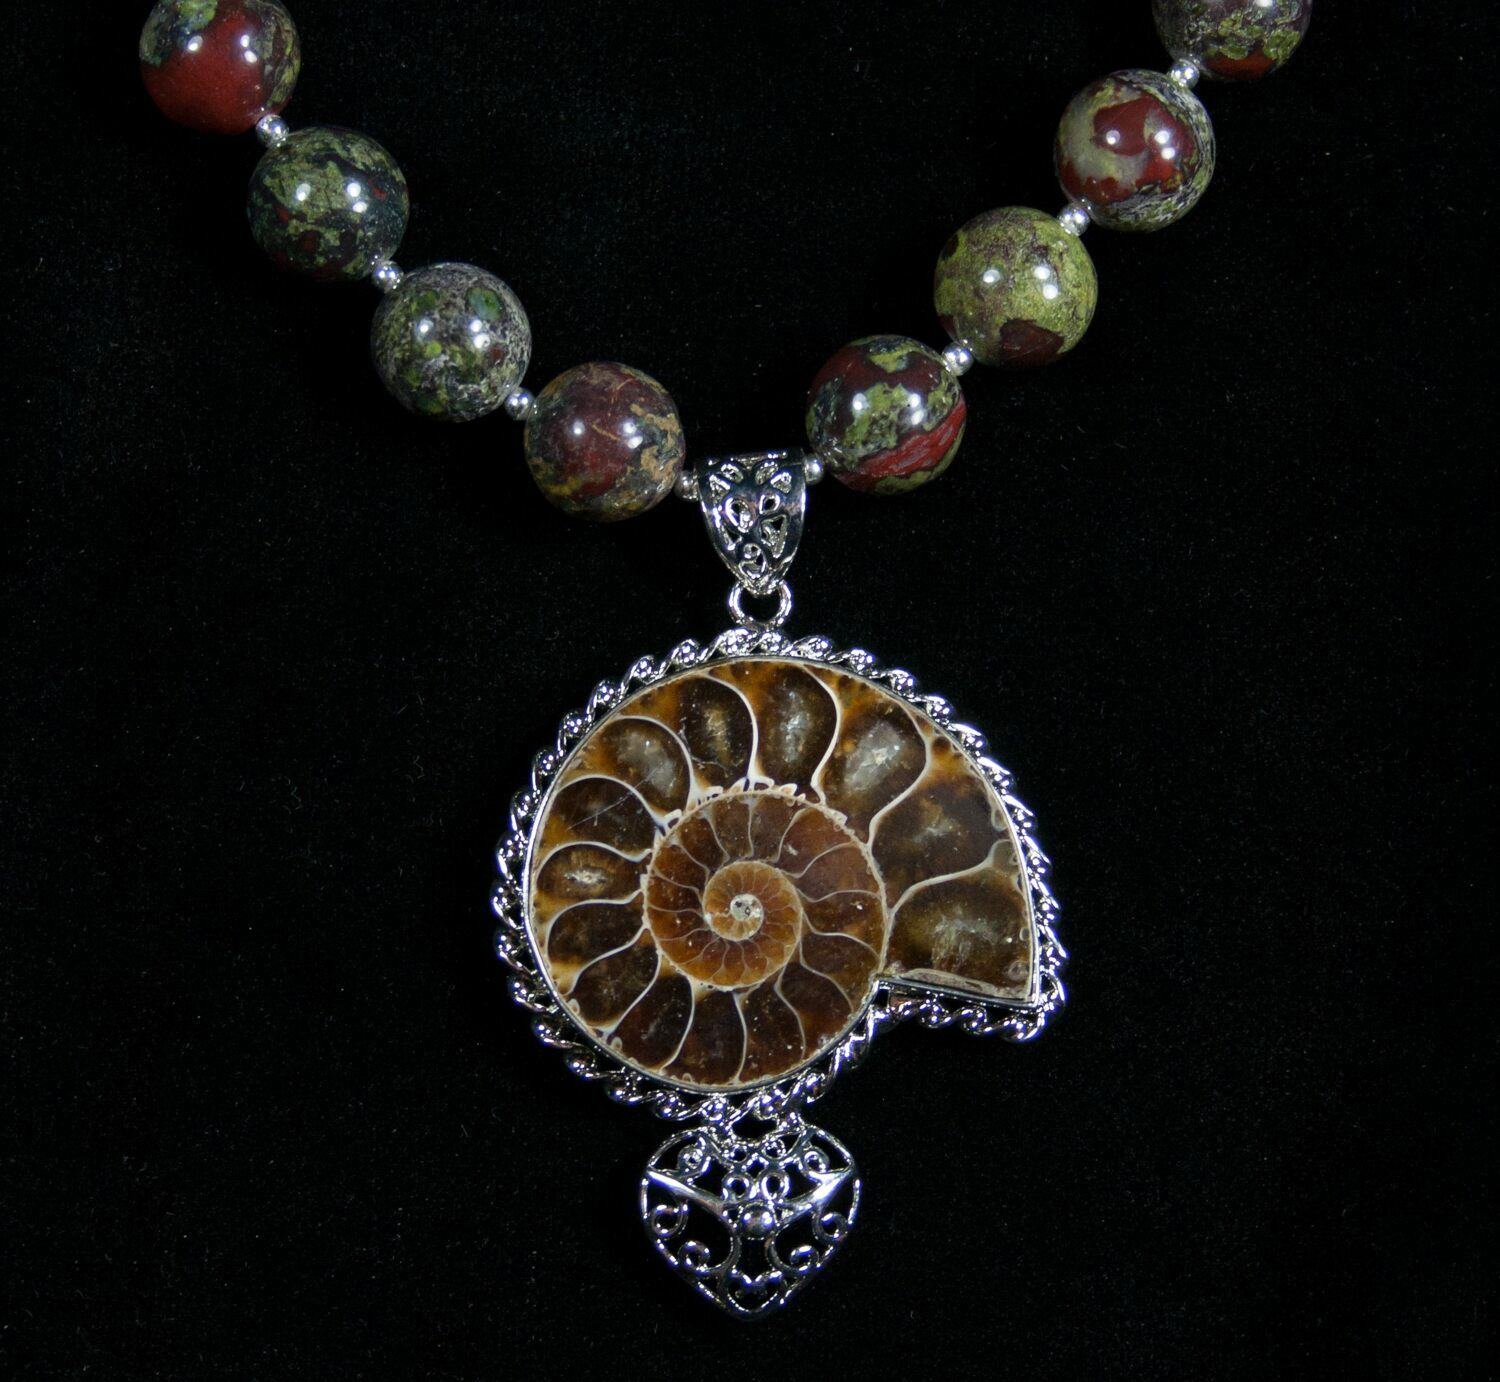 Ammonite bloodstone necklace earring set for sale 5218 ammonite bloodstone necklace earring set 5218 2 mozeypictures Image collections